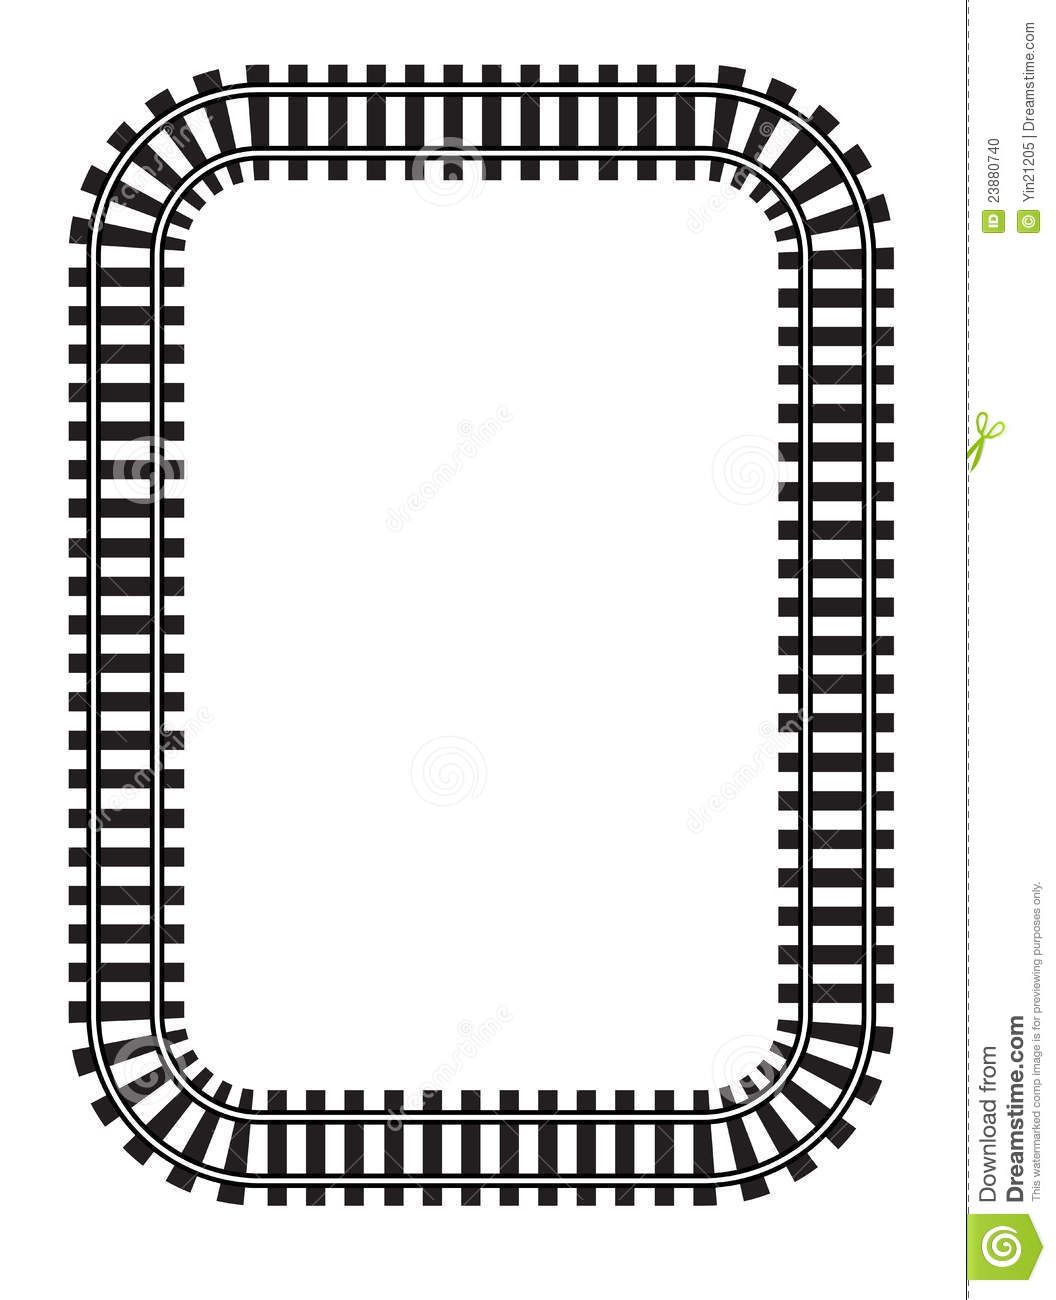 train track clipart.